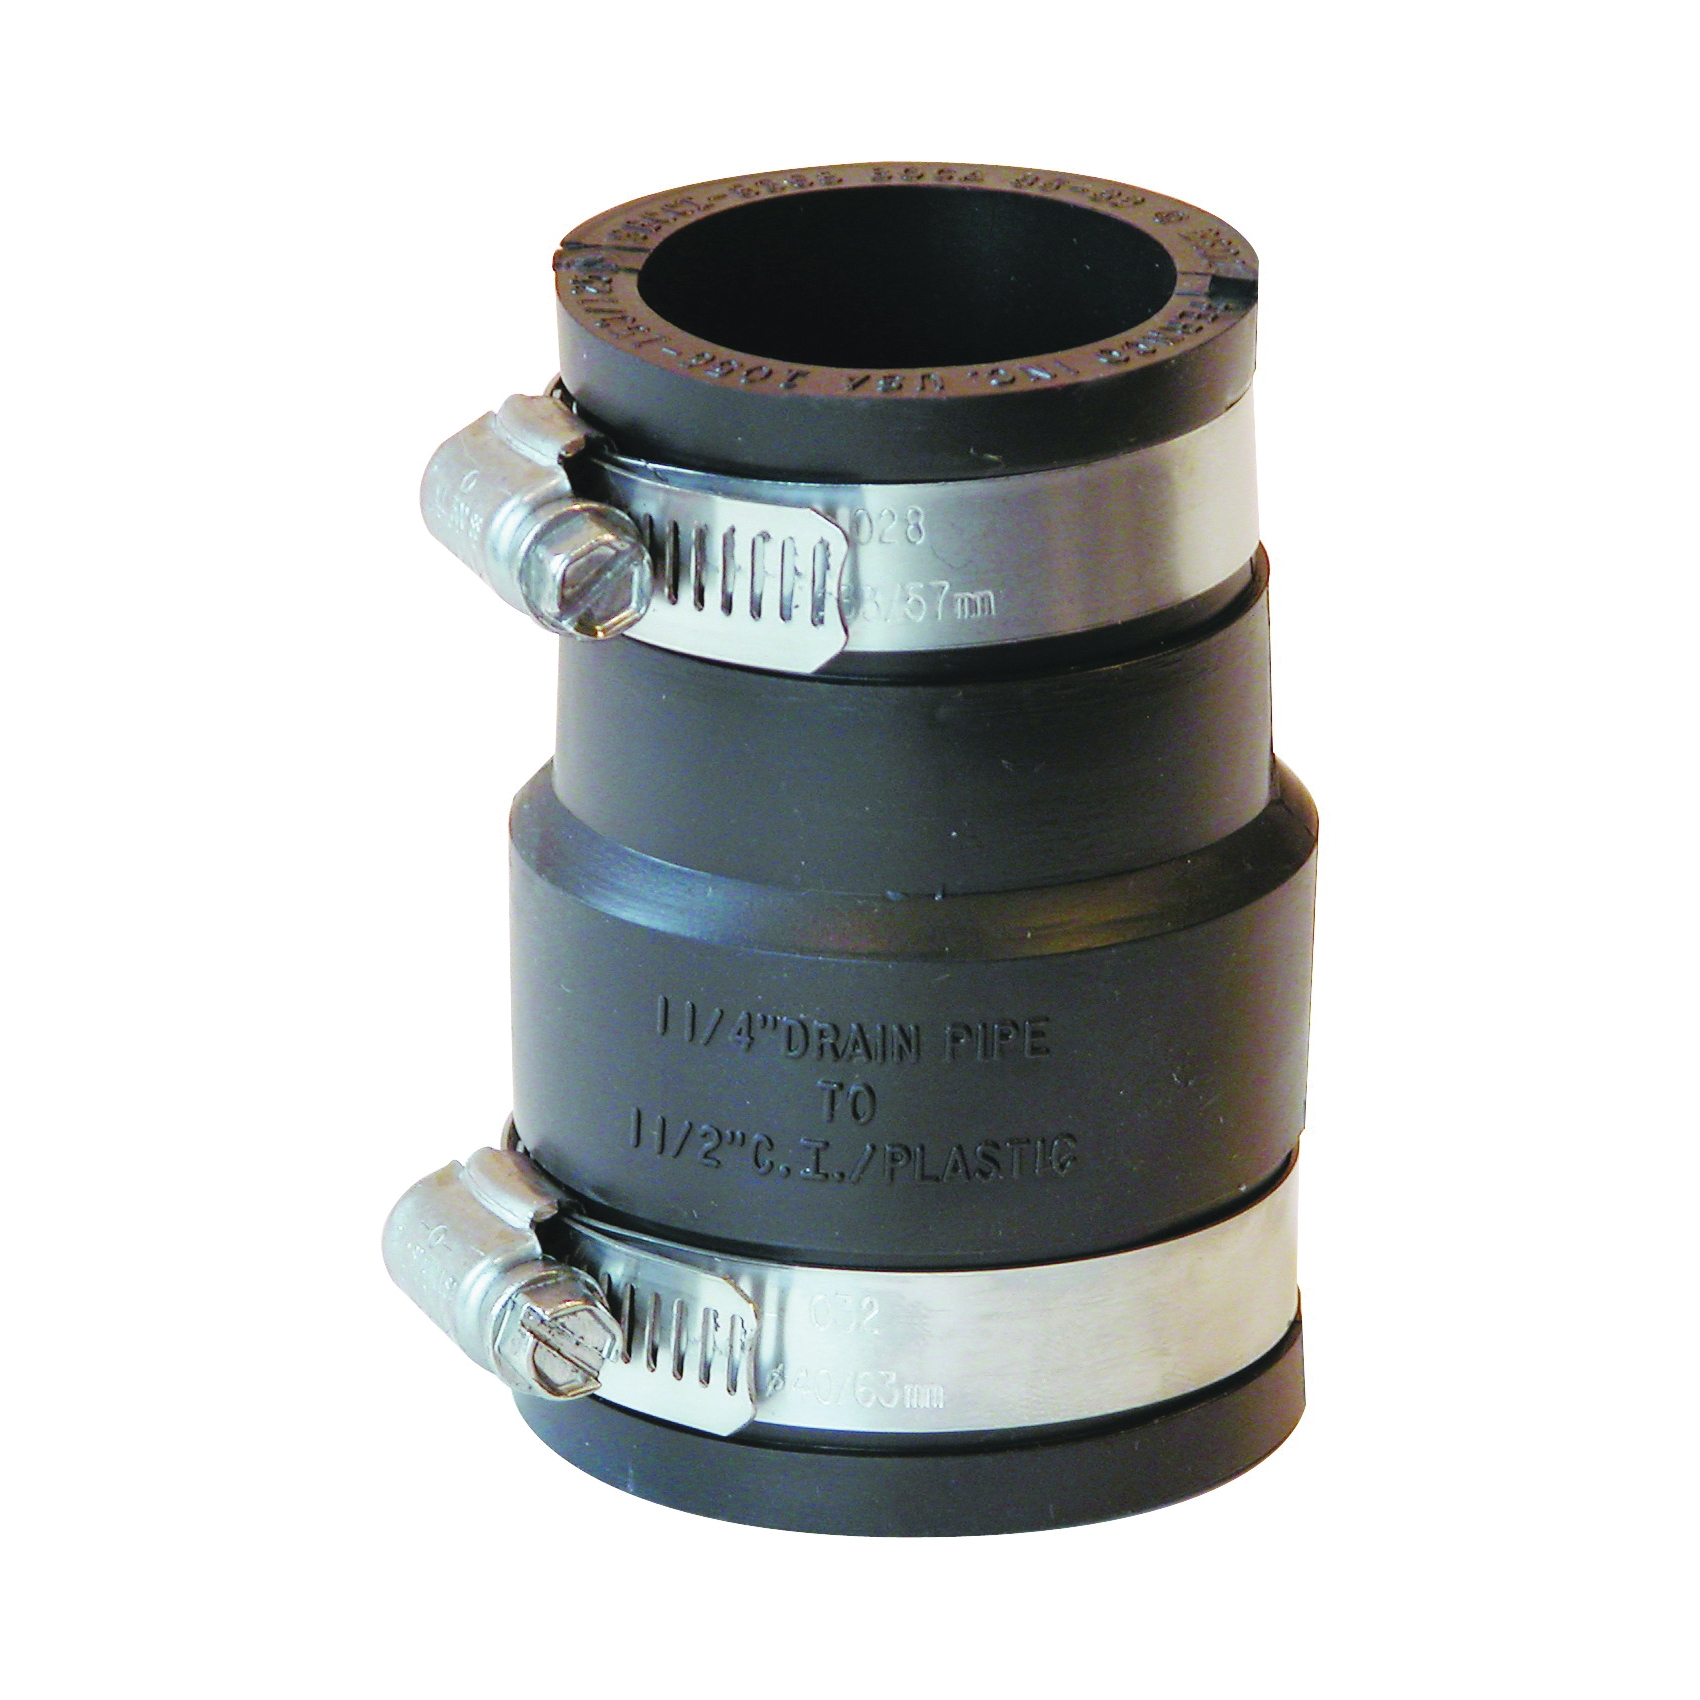 Picture of FERNCO P1056-150/125 Flexible Pipe Coupling, 1-1/2 x 1-1/4 in, PVC, Black, 4.3 psi Pressure